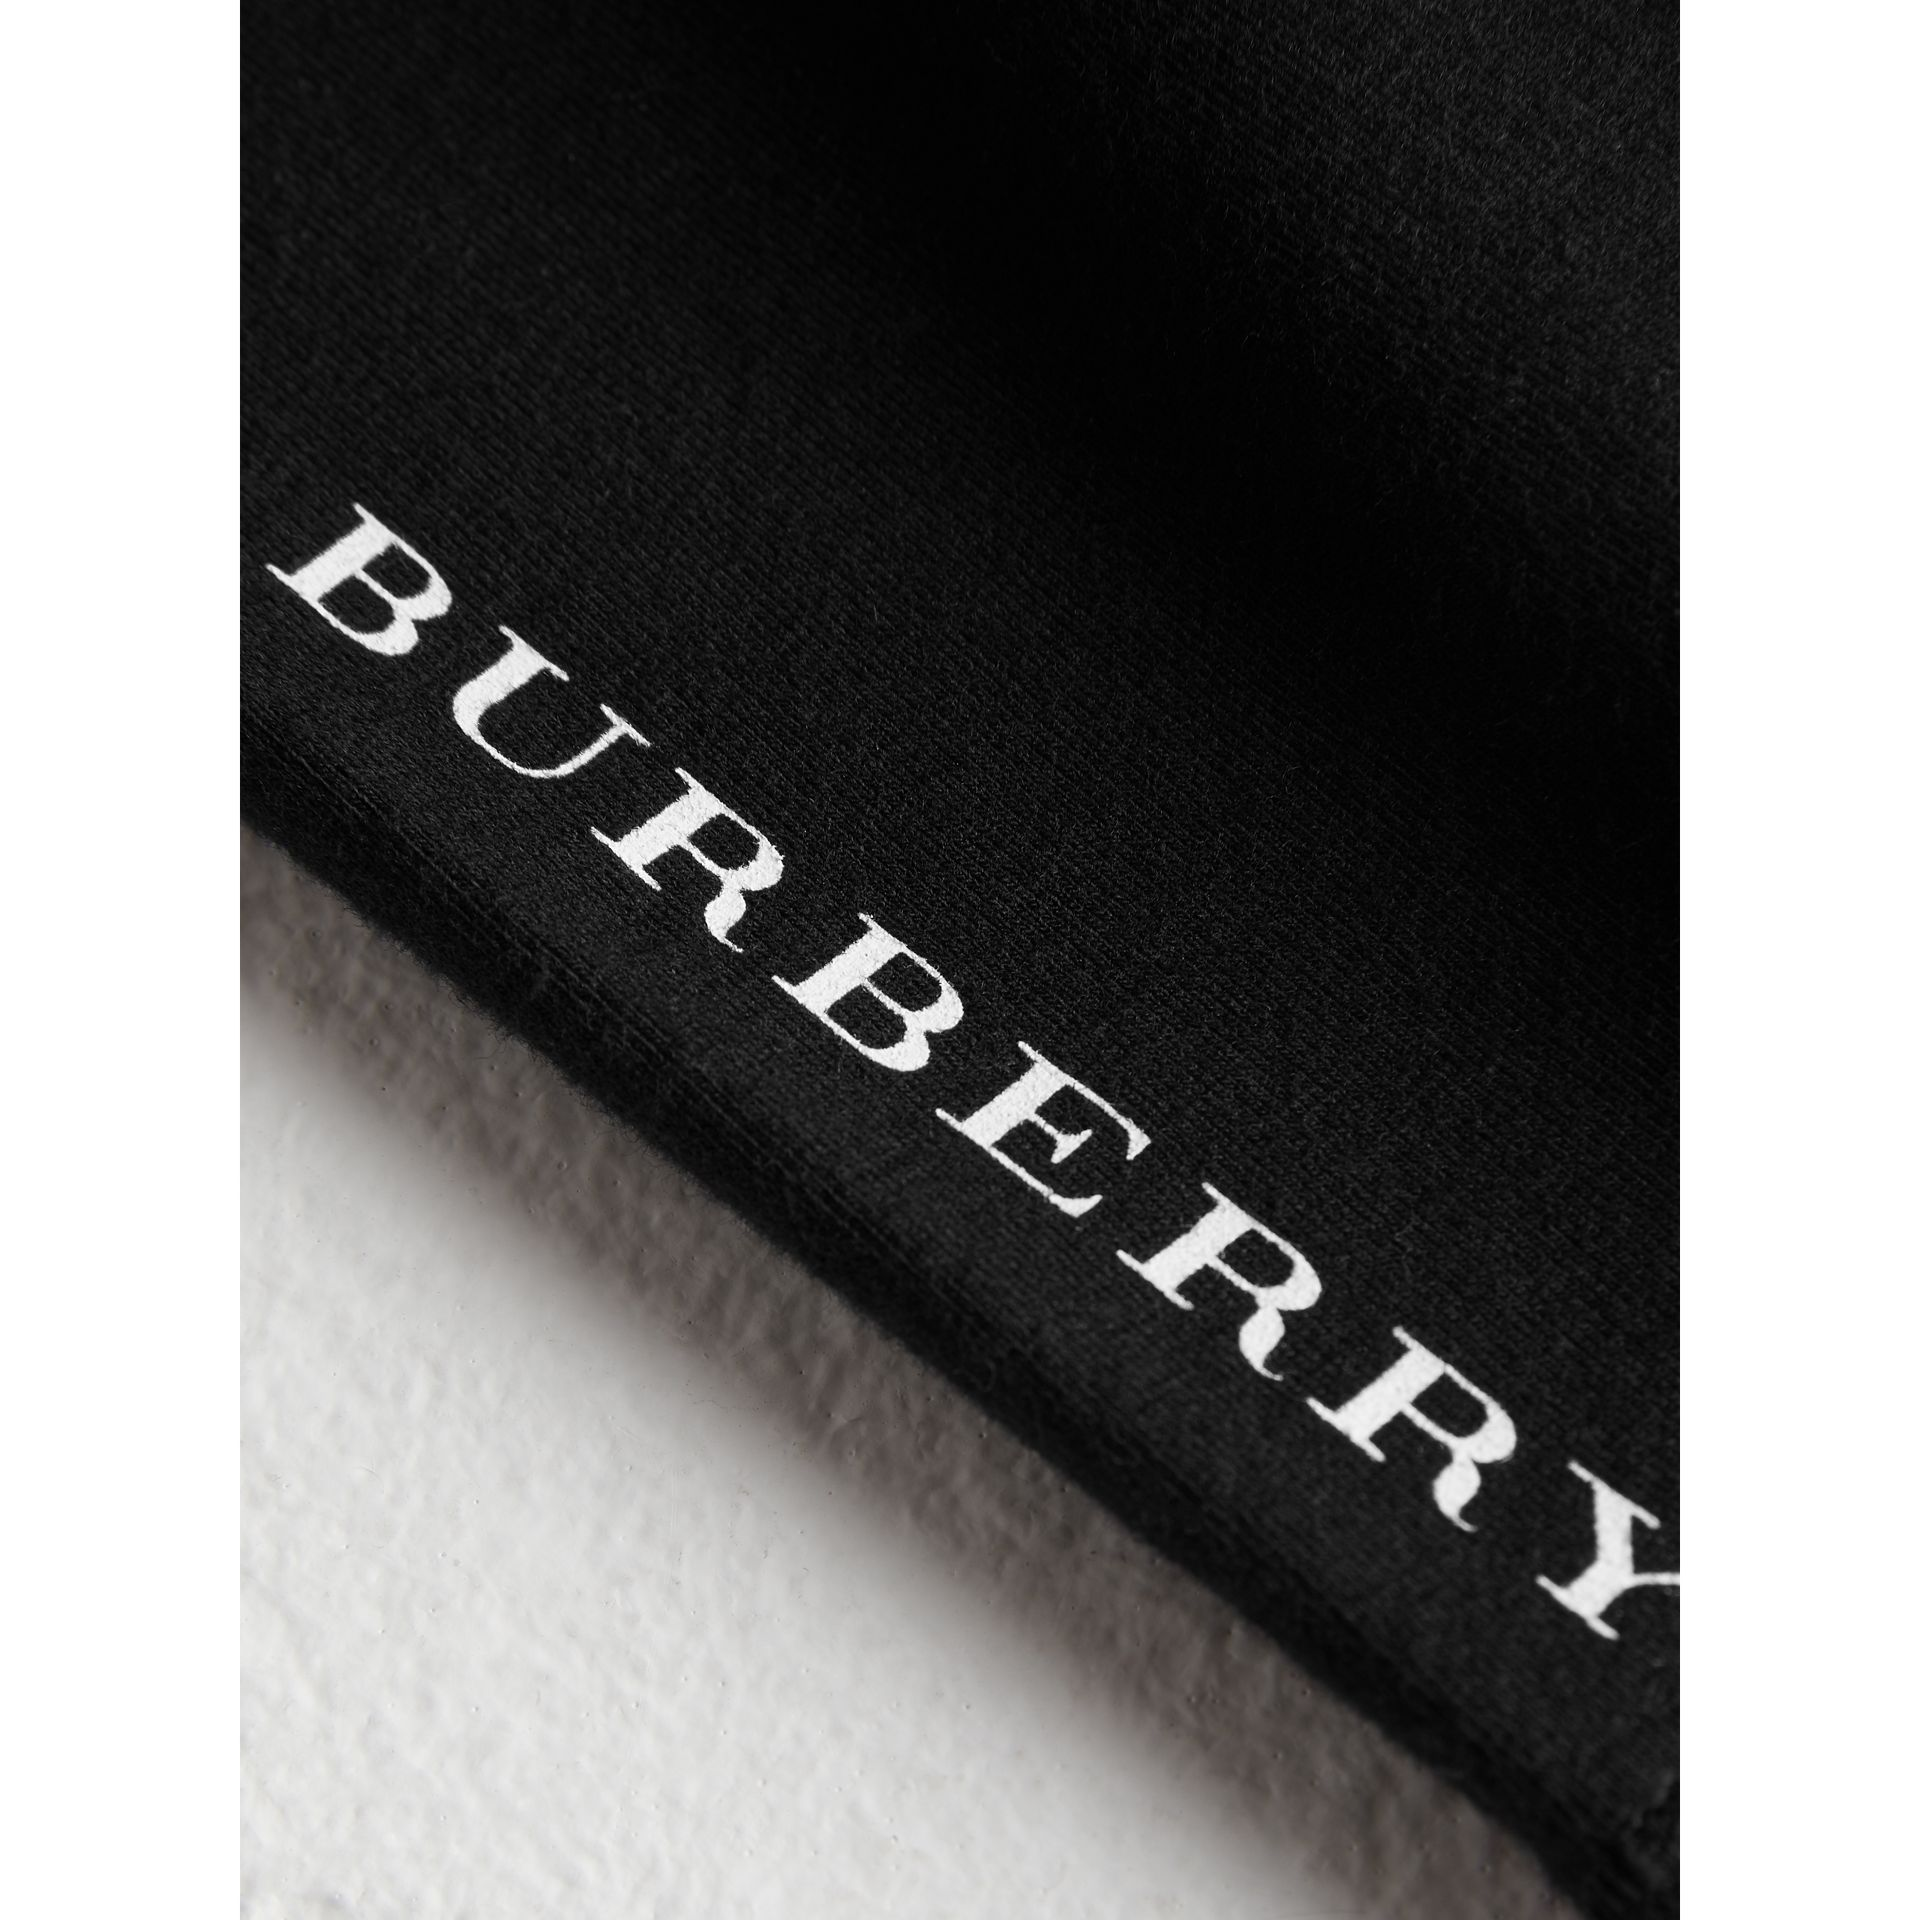 Legging en coton extensible avec logo (Noir) - Enfant | Burberry - photo de la galerie 1